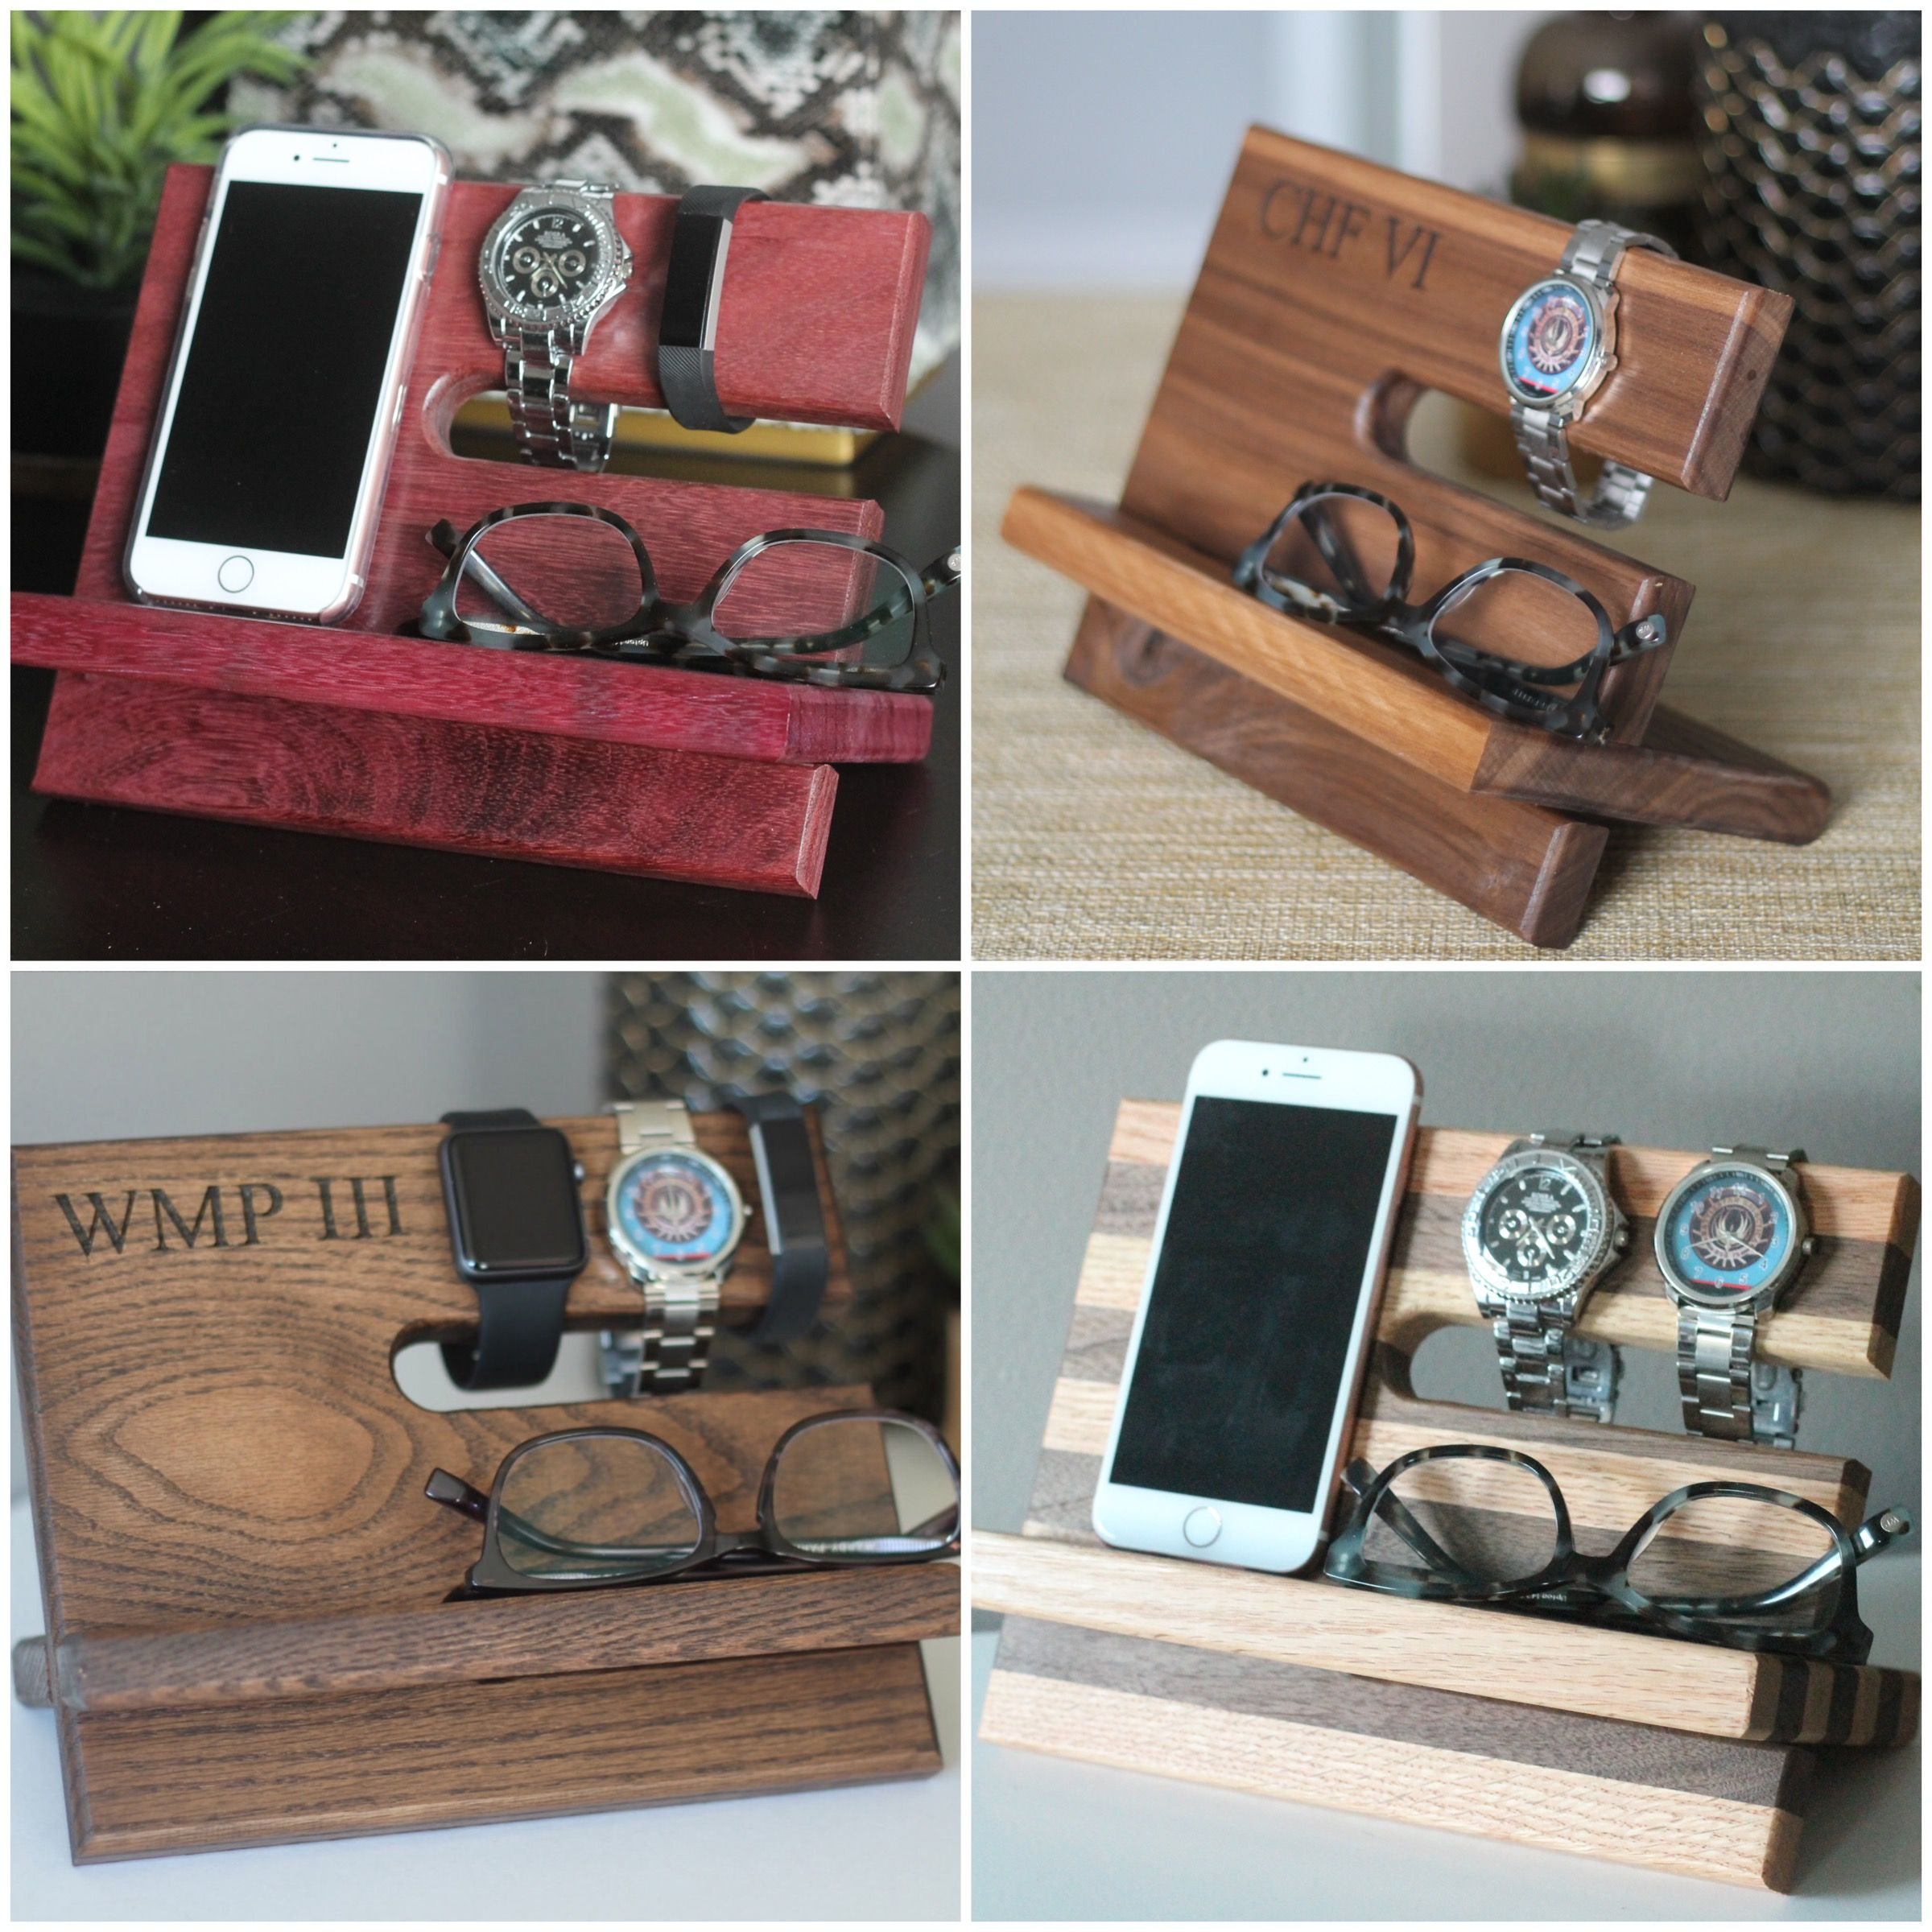 Fatherus day gift guide arts and crafts pinterest gift